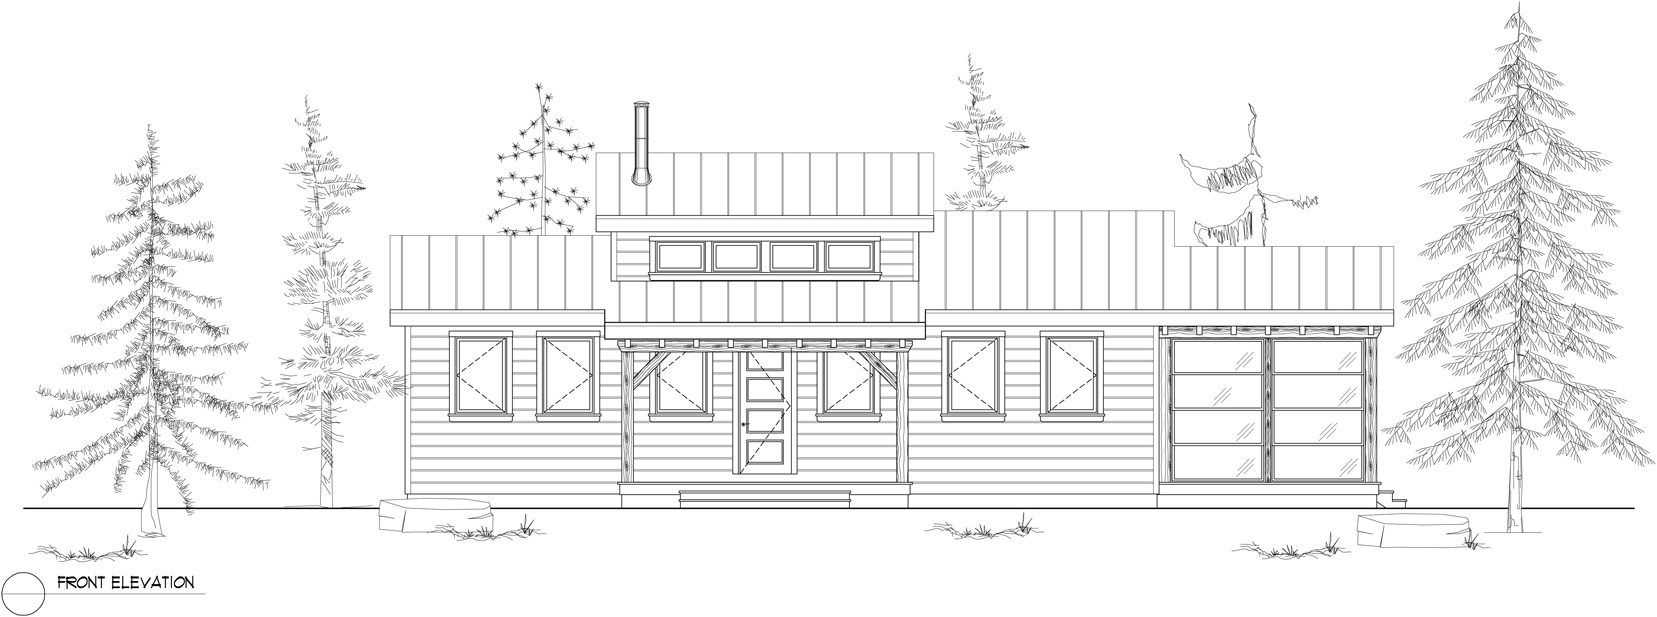 Normerica Timber Frames, House Plan, The Kershaw 3808, Front Elevation